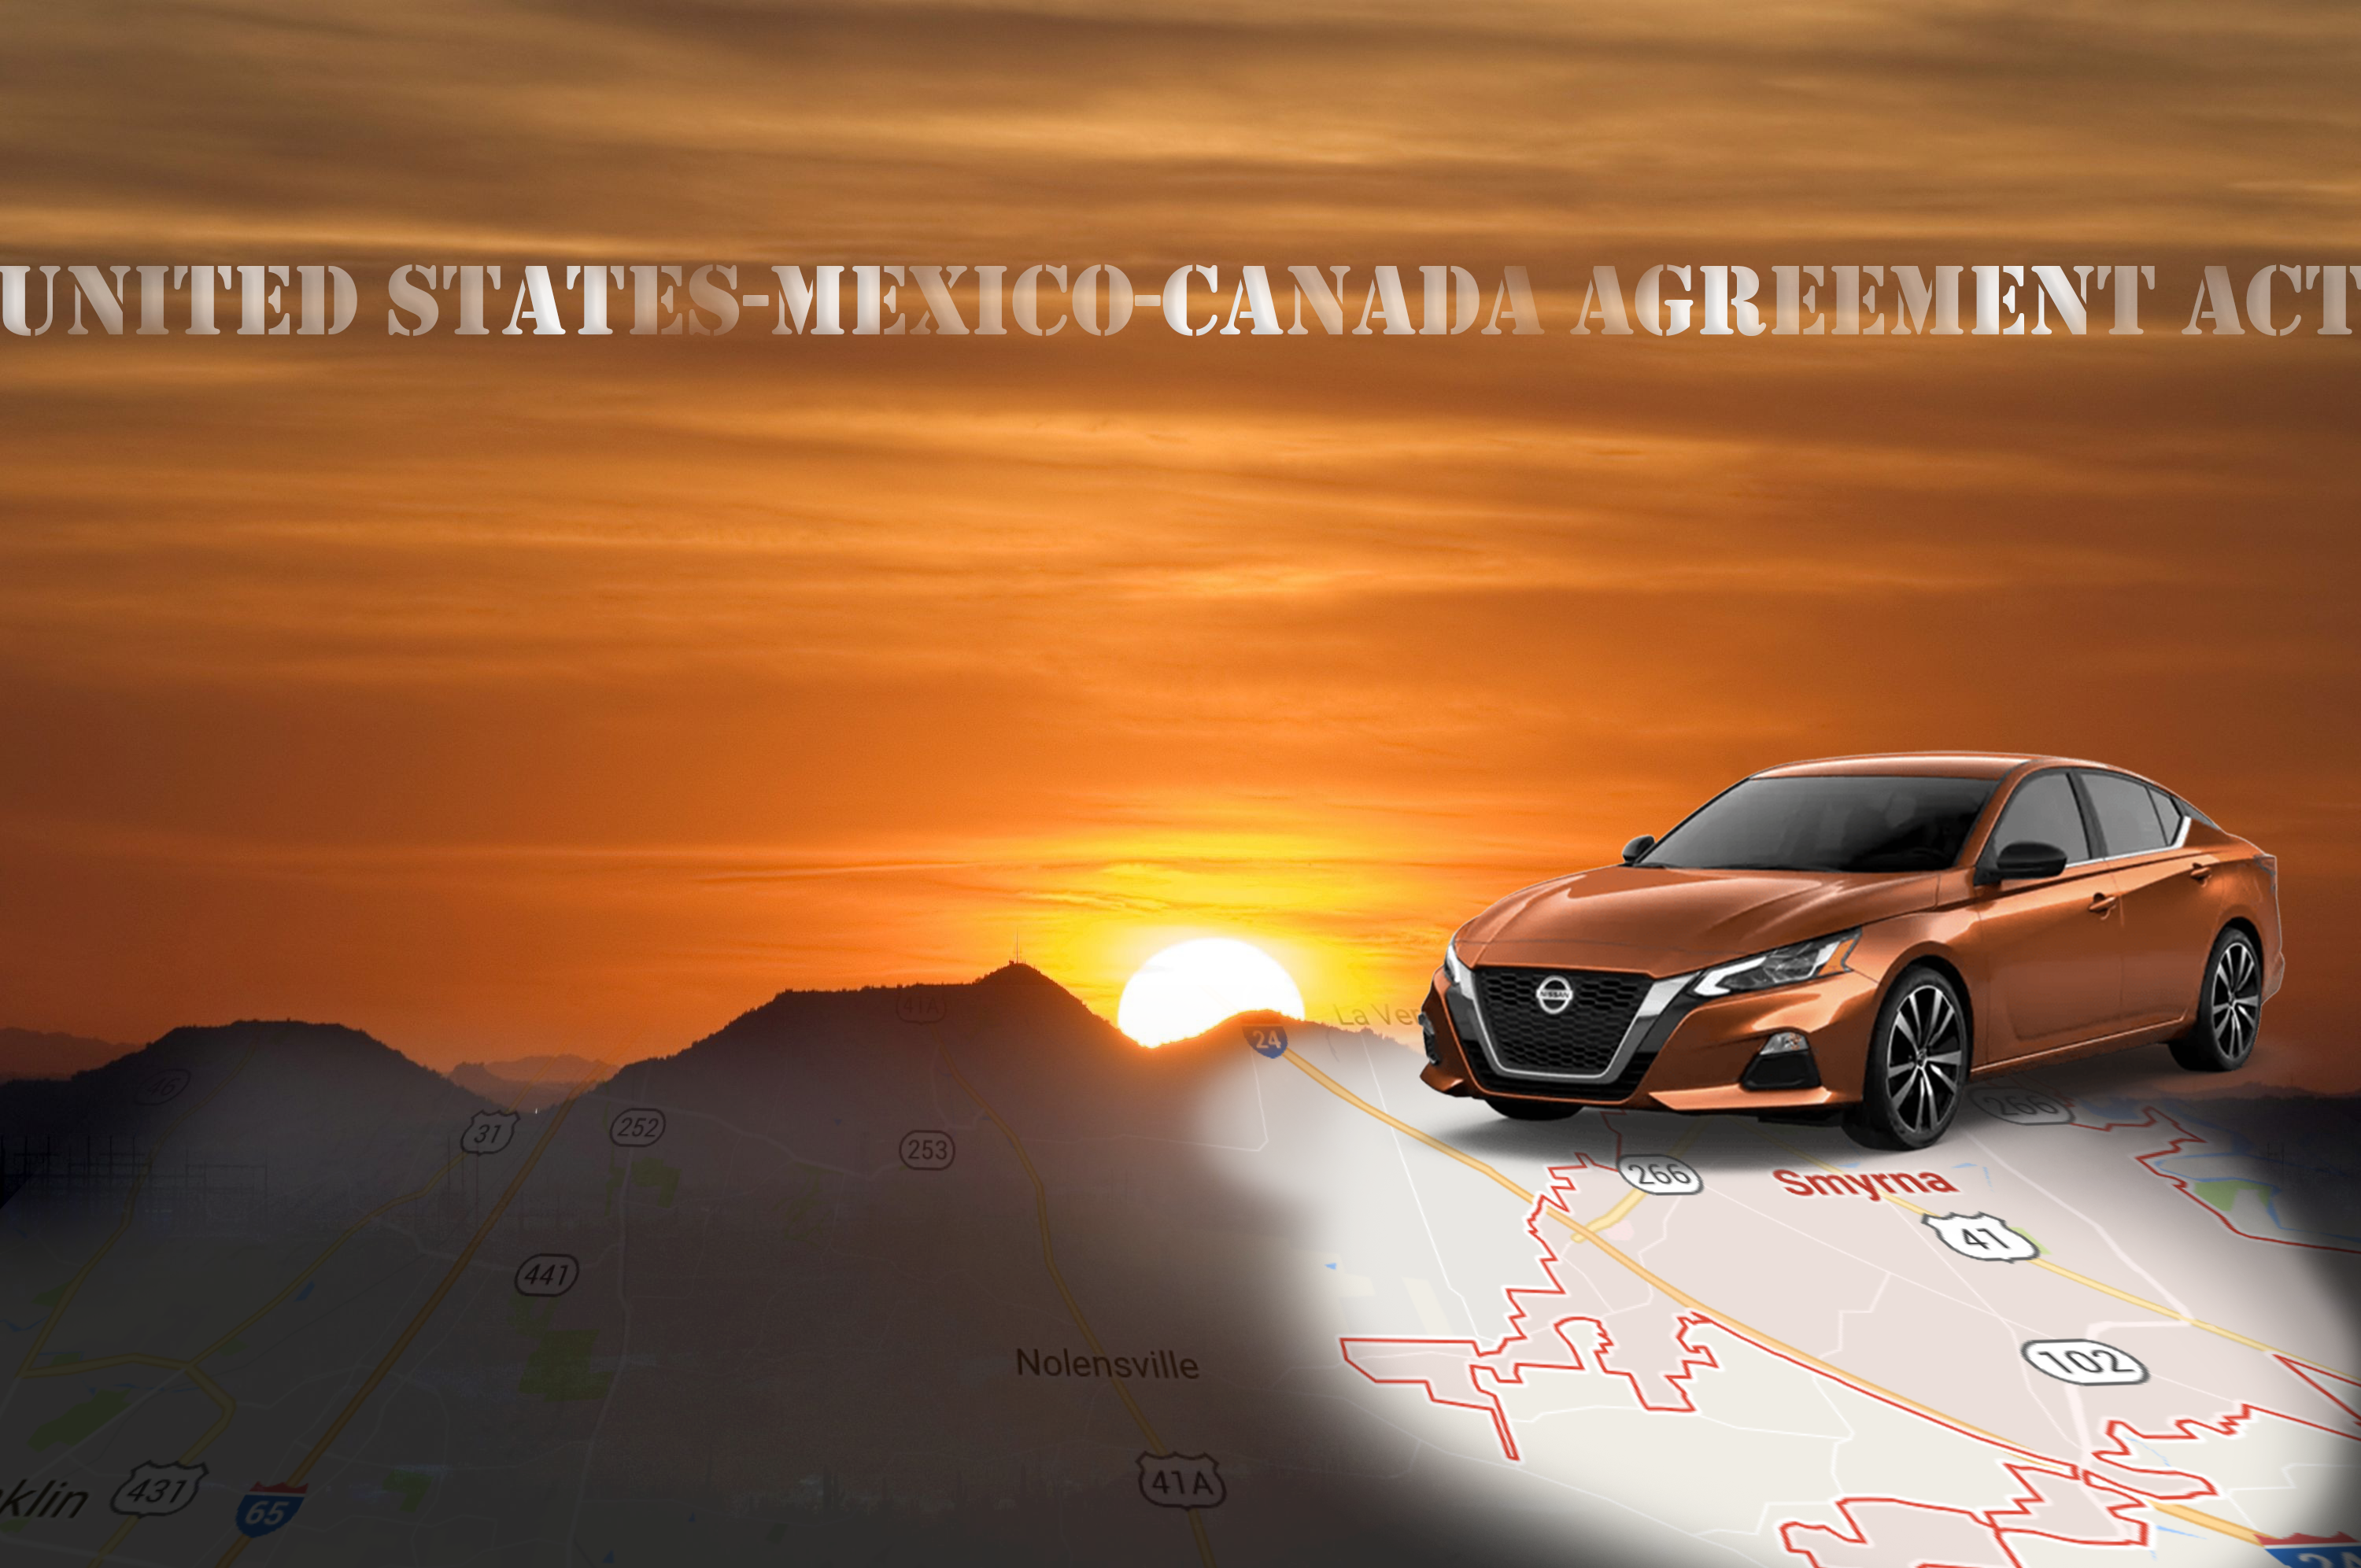 New United States-Mexico-Canada Agreement Act could help local workers at companies like Nissan in Smyrna